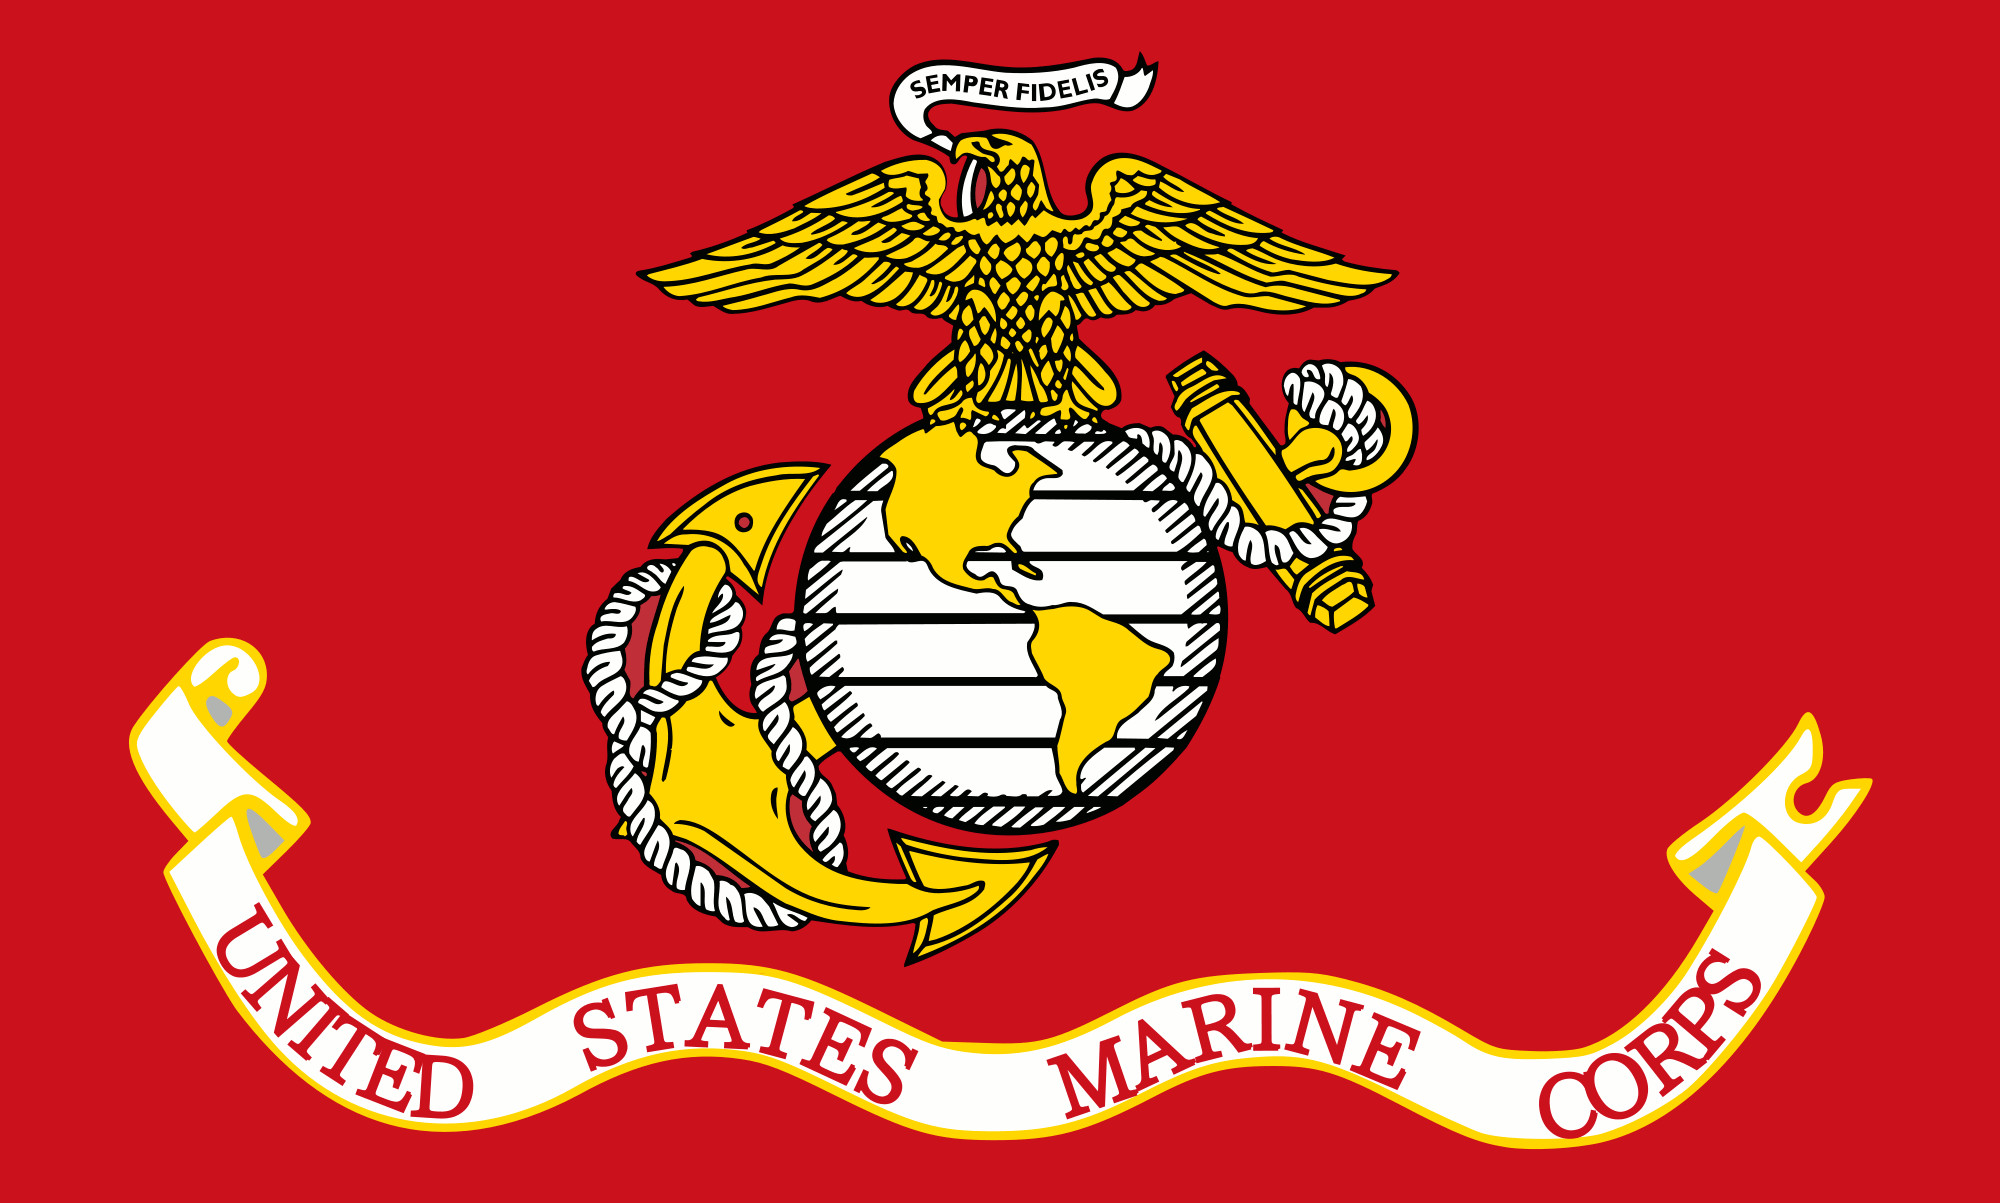 United States Marine Corps Wallpaper | Wallpaper Download